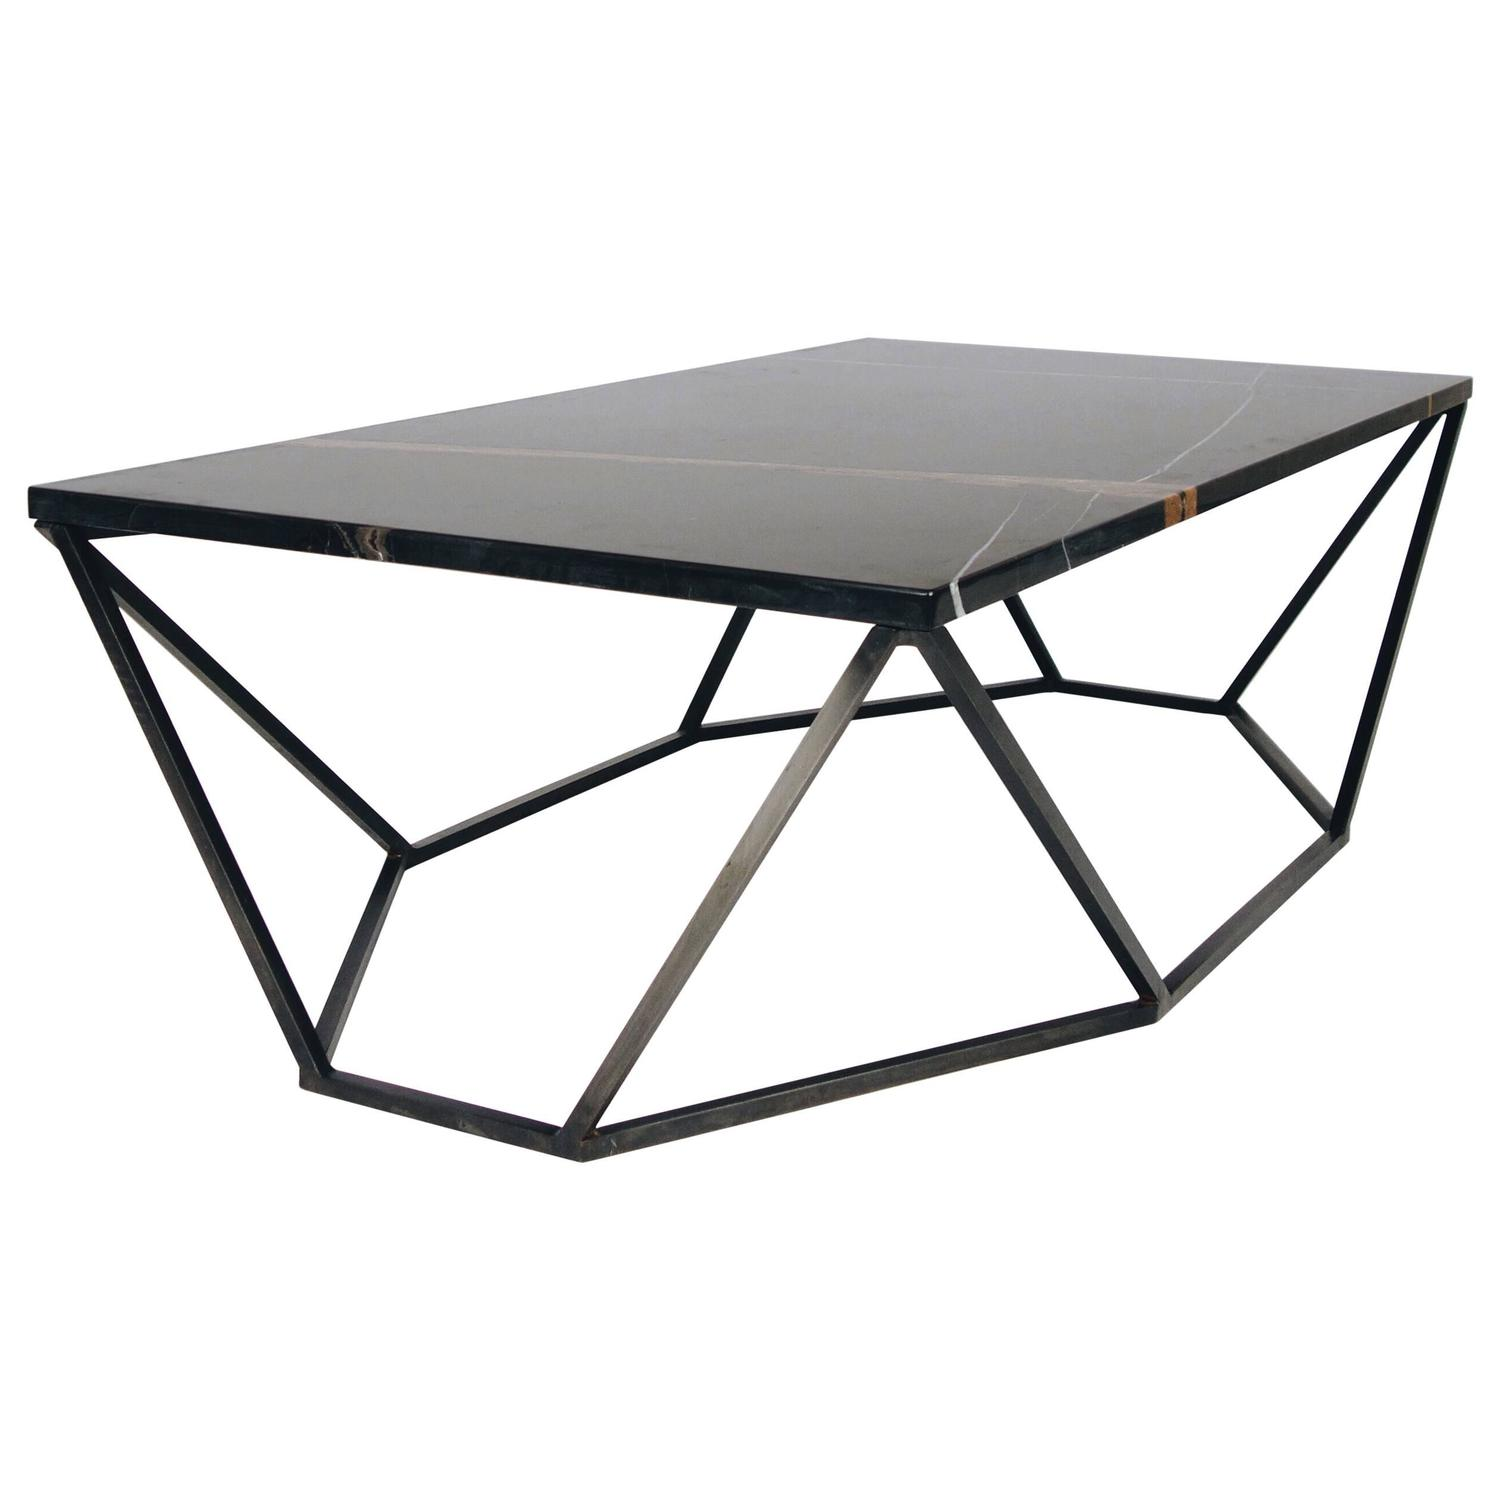 Dusk Coffee Table Small In Polished Black Marble And Blackened Steel For Sale At 1stdibs